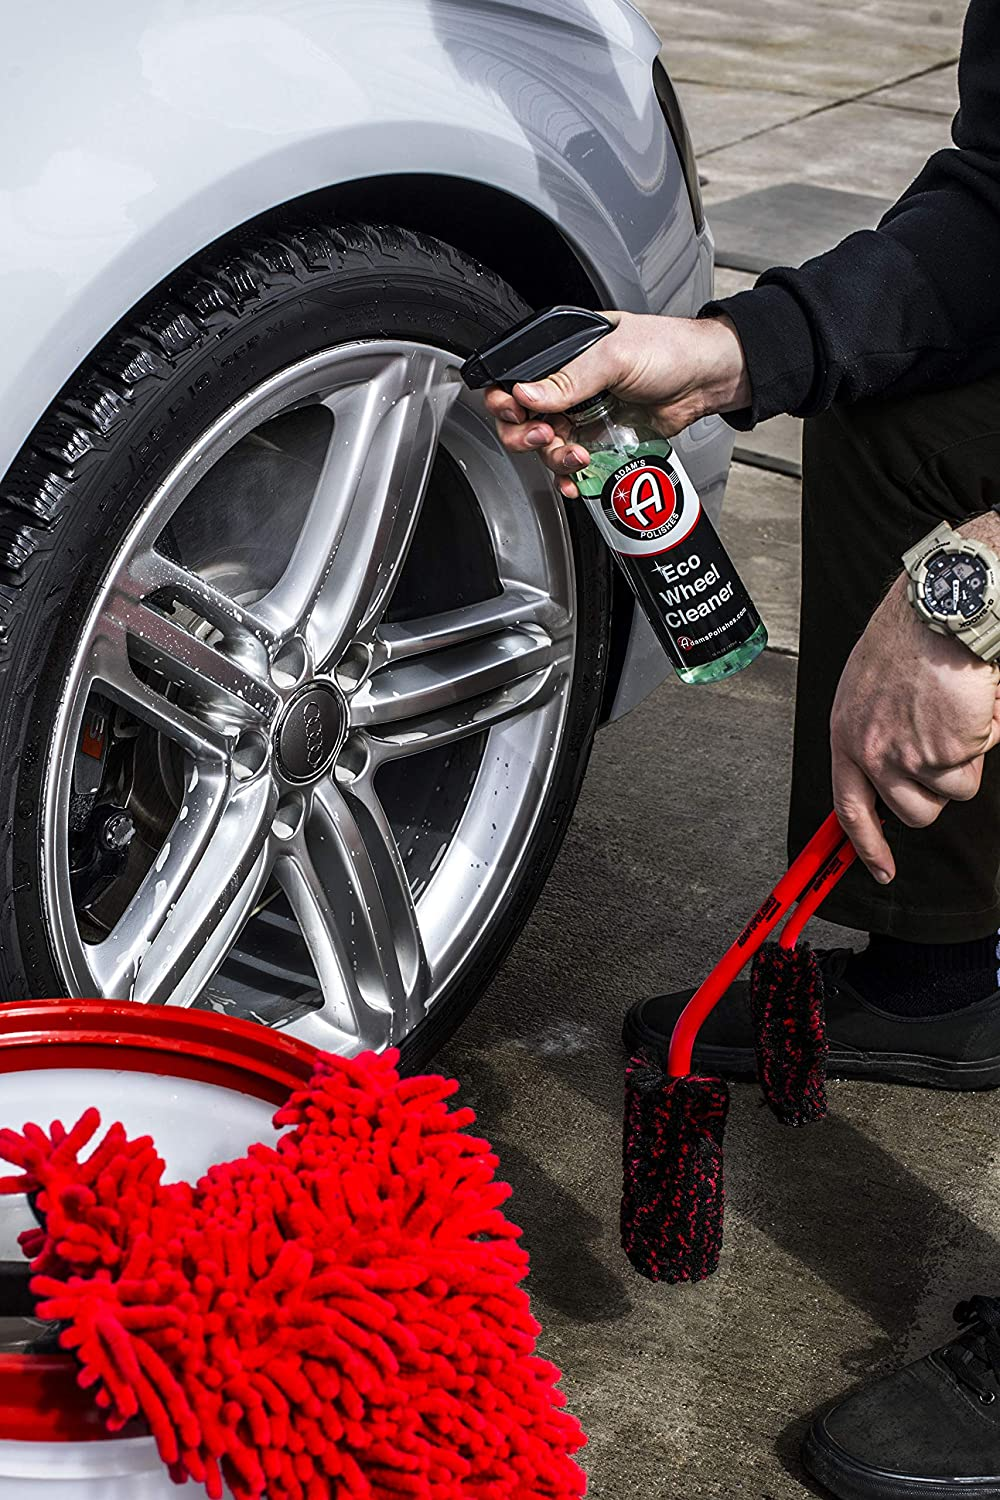 Specially Designed Brushes for Every Part of Your Wheels /& Tires Wheel Brush Kit Every Brush You Need to Detail Your Cars Wheels and More Adams Wheel Brush Kit Barrels Tires